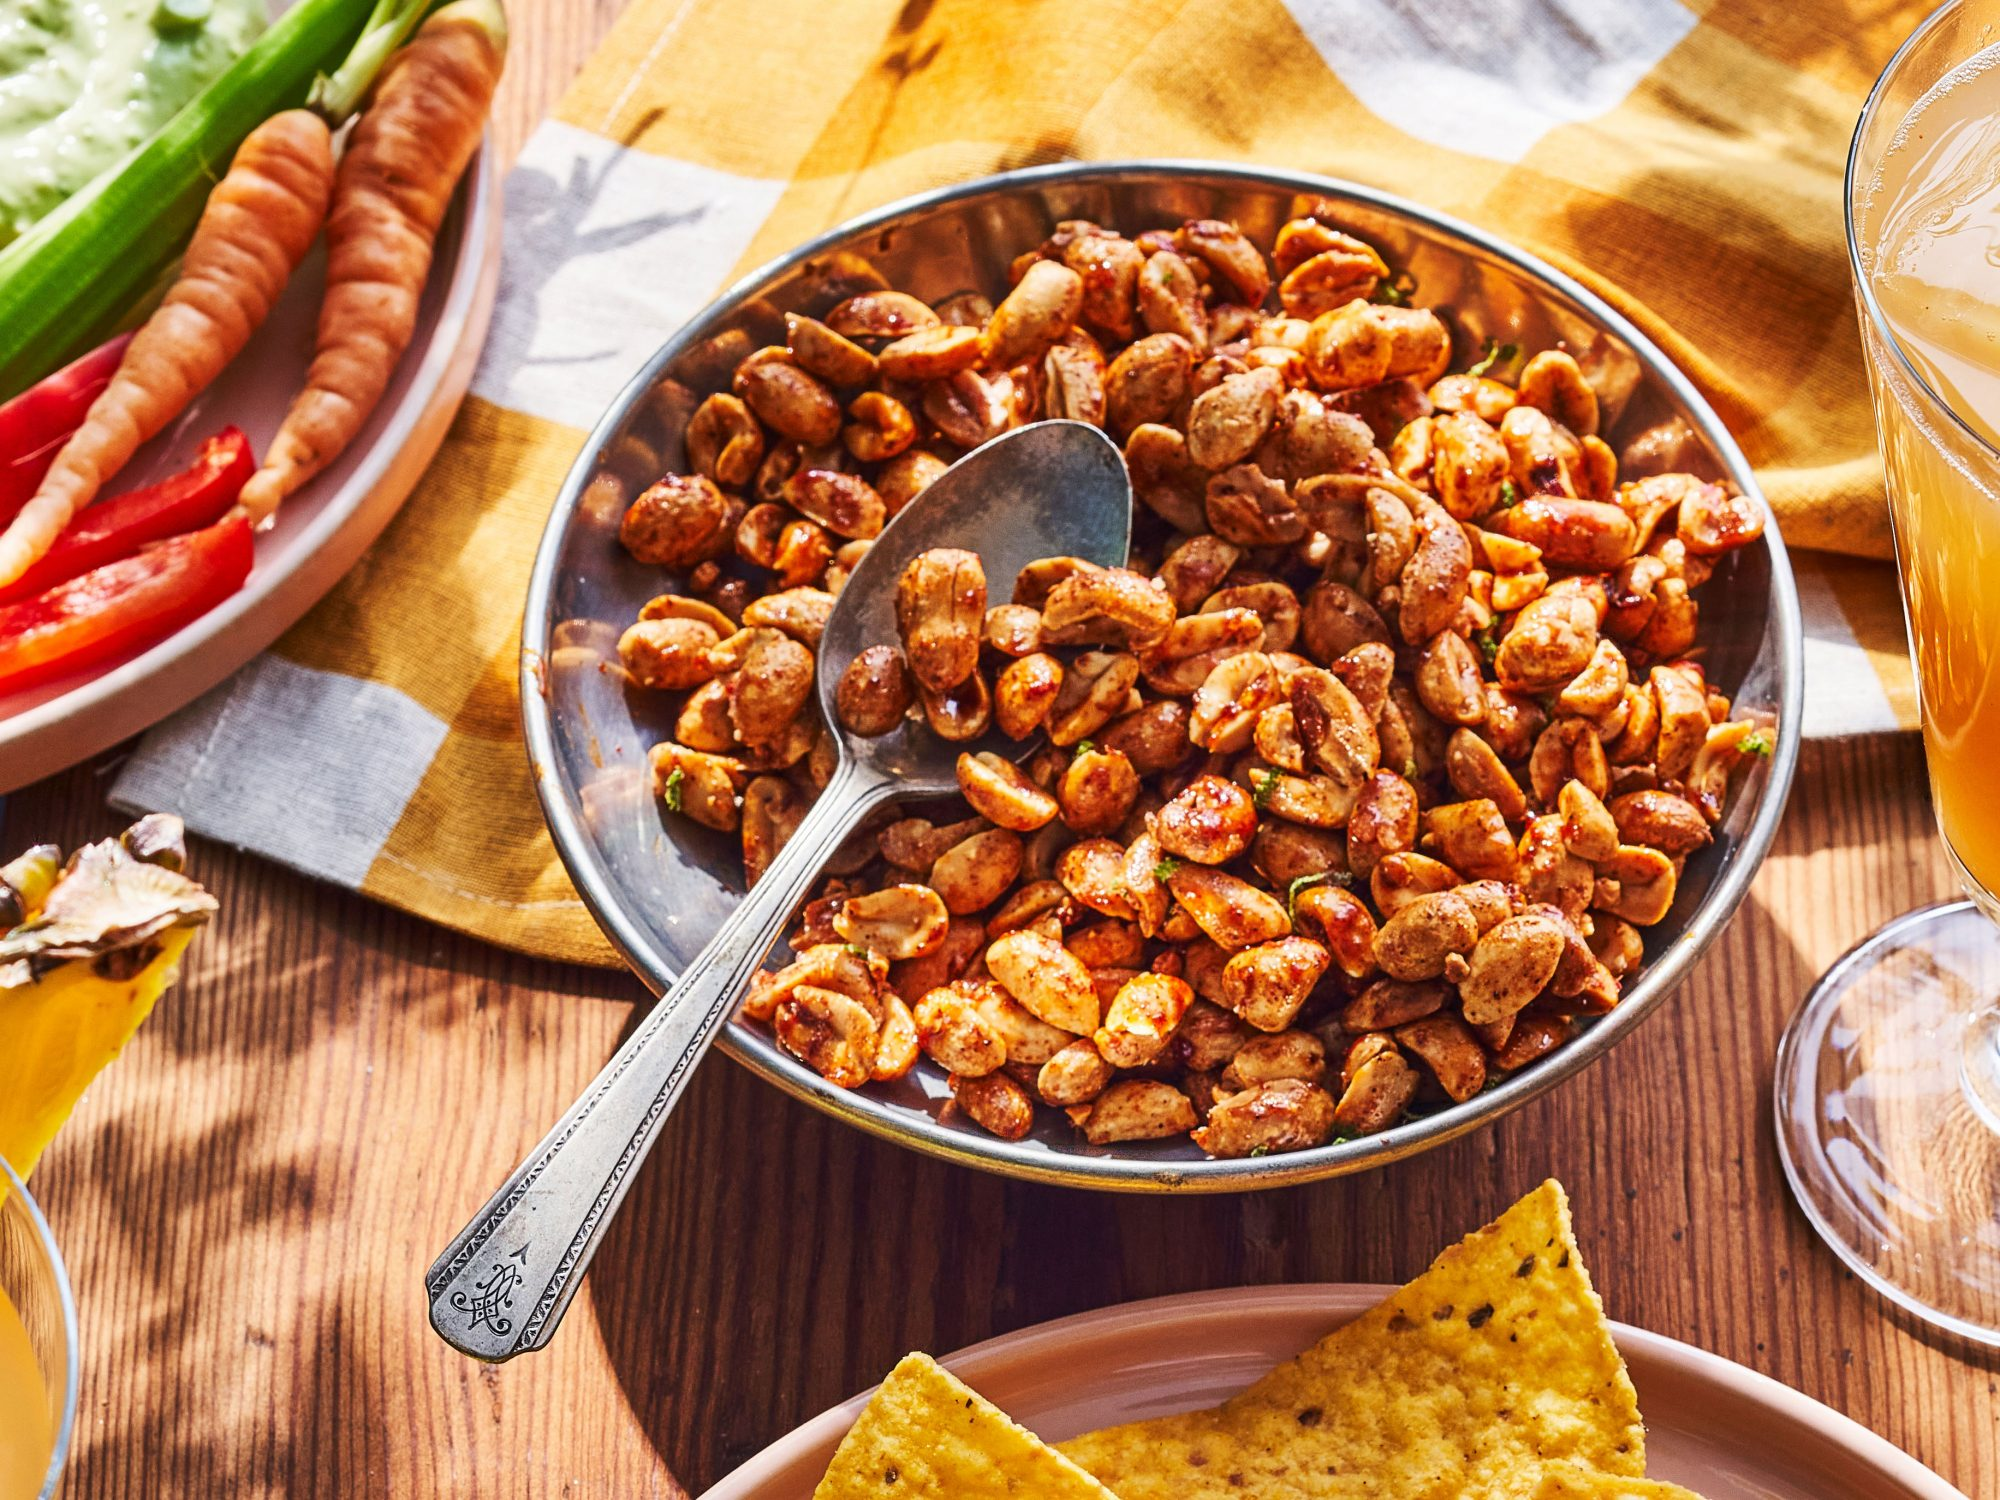 Chile-Lime-Honey Roasted Peanuts